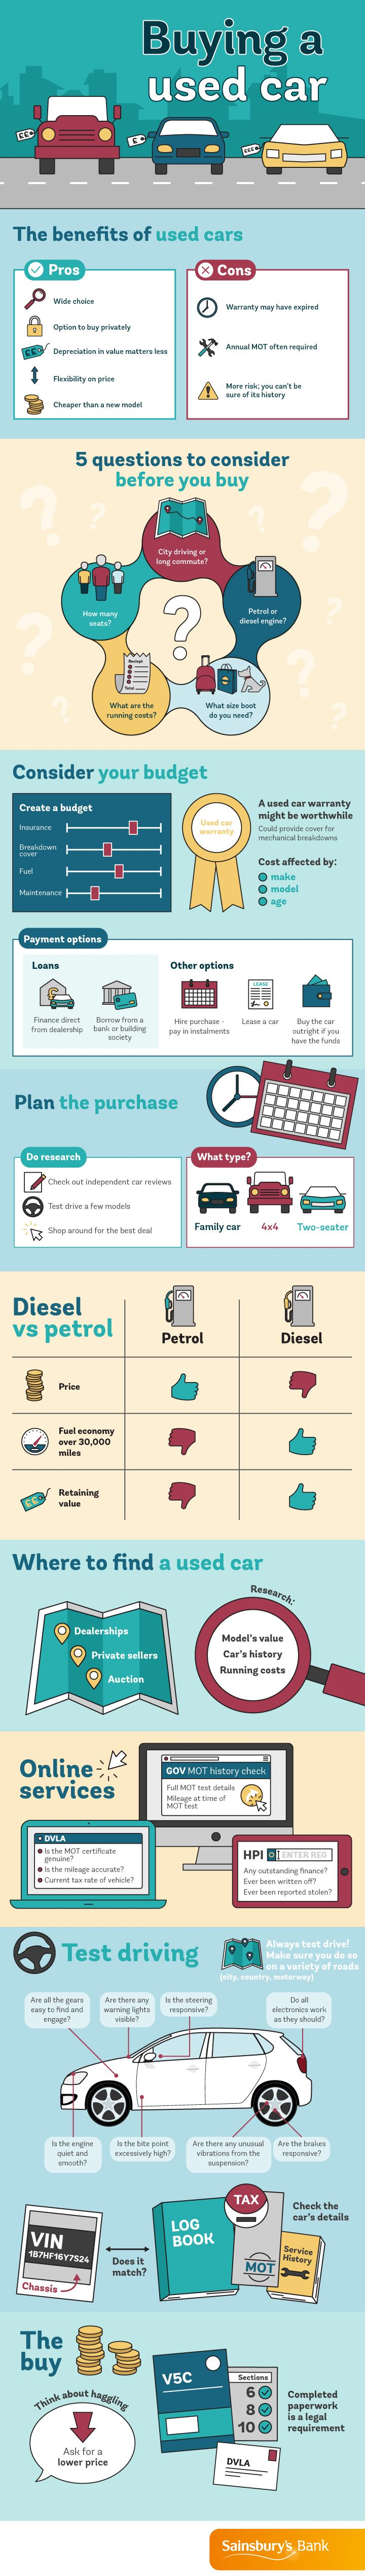 Buying a Used Car #infographic